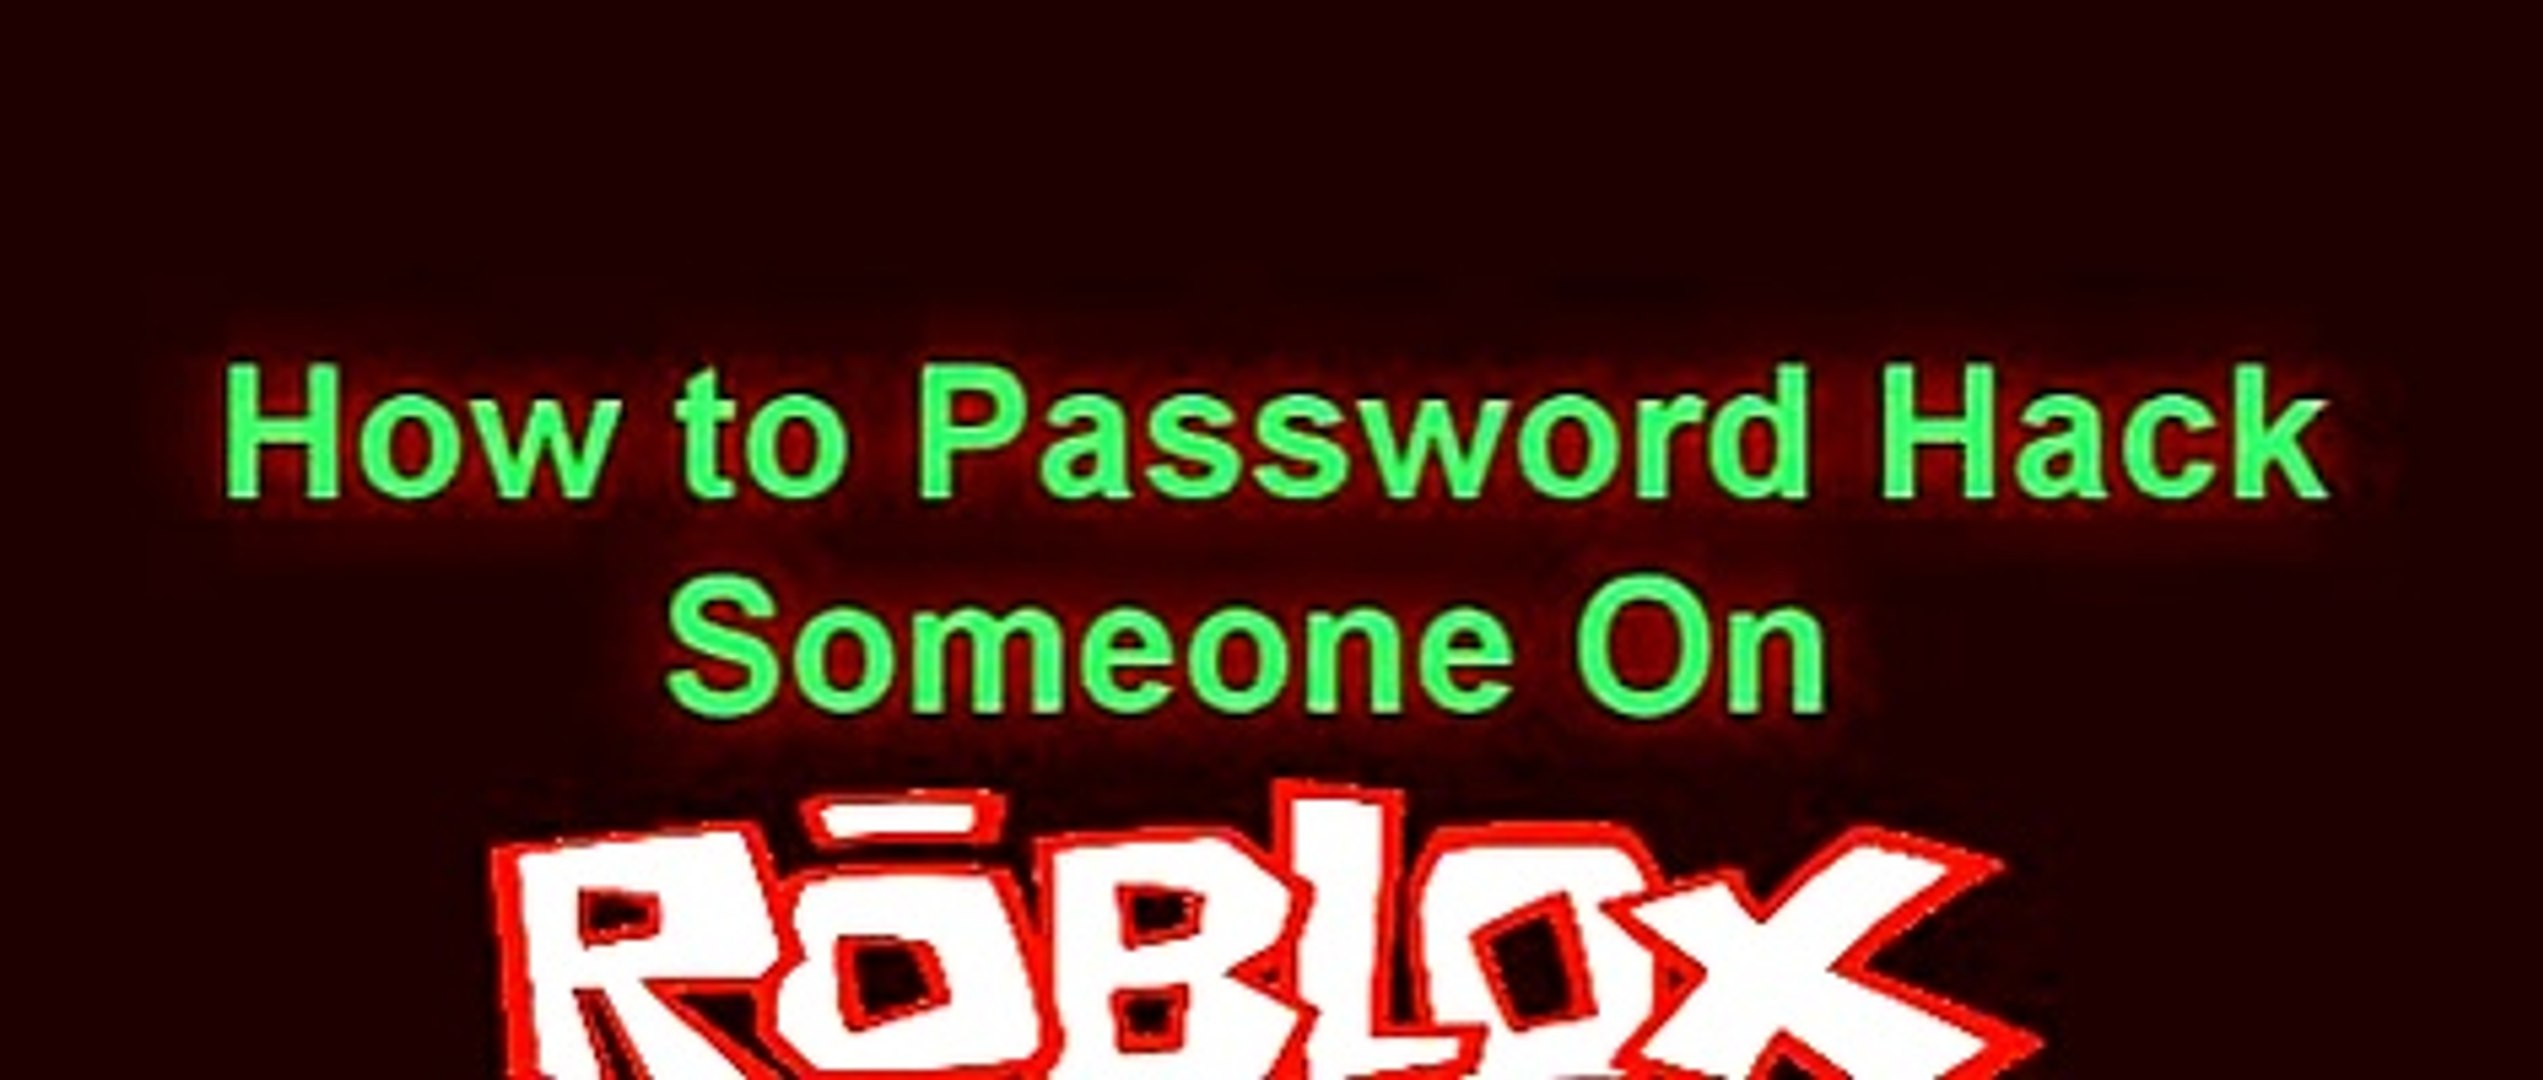 How To Password Guess Hack Someone On Roblox Video Dailymotion